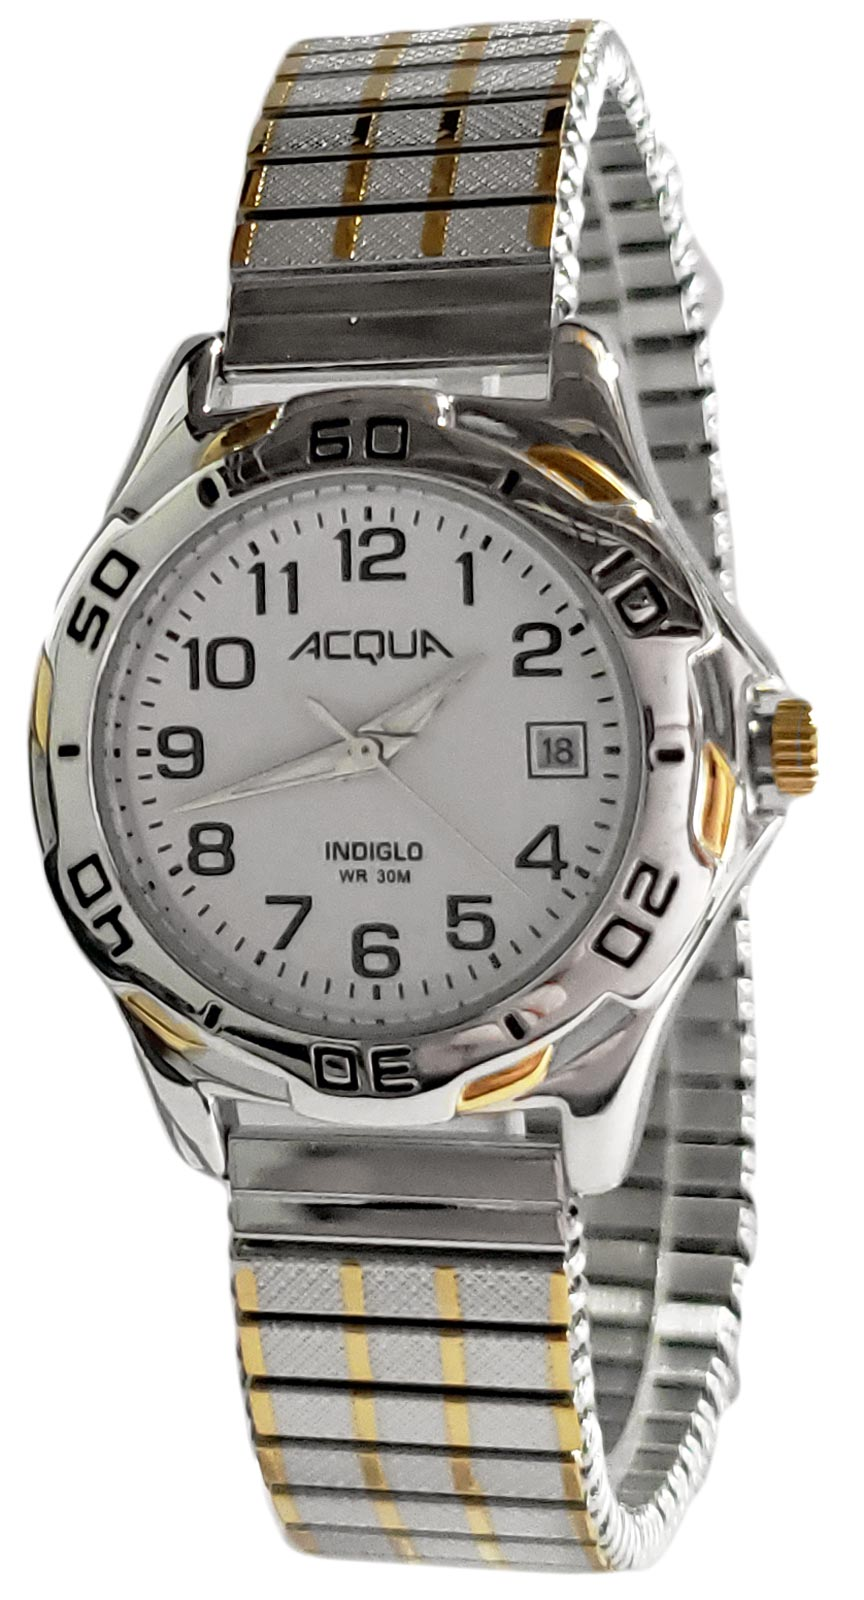 timex acqua indiglo watch instructions